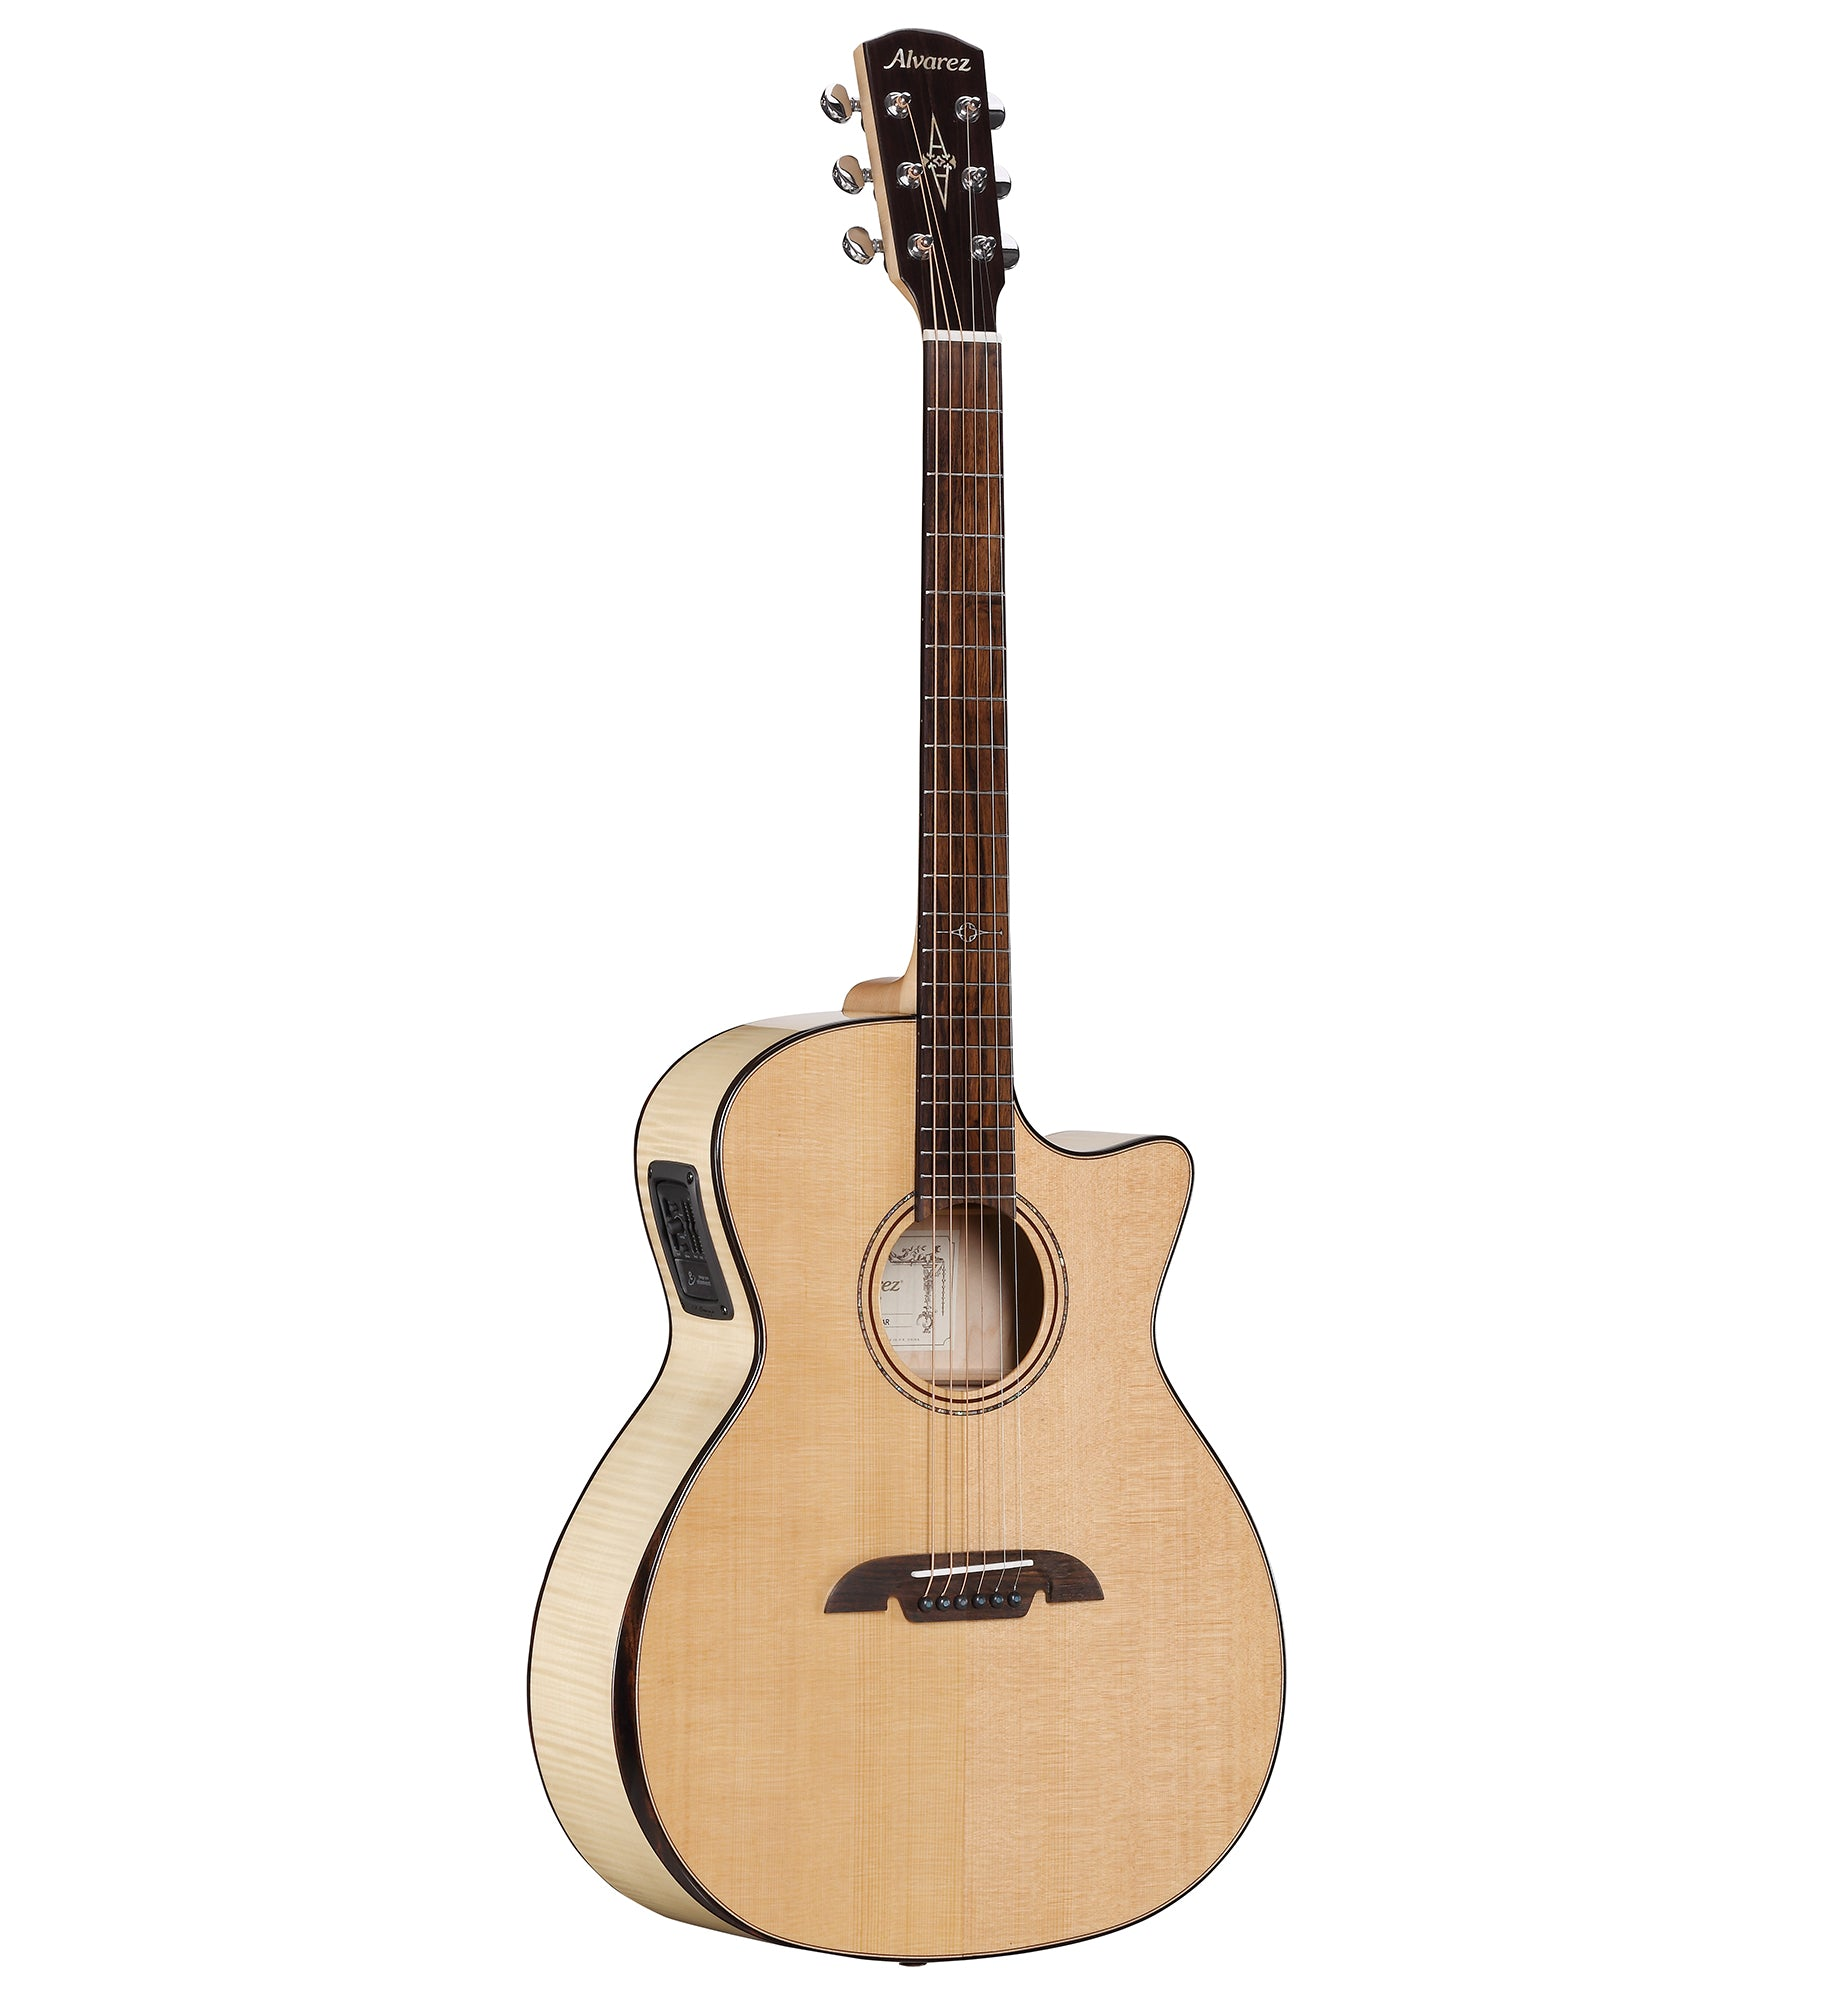 Alvarez AGFM80CEAR Electric Acoustic Guitar